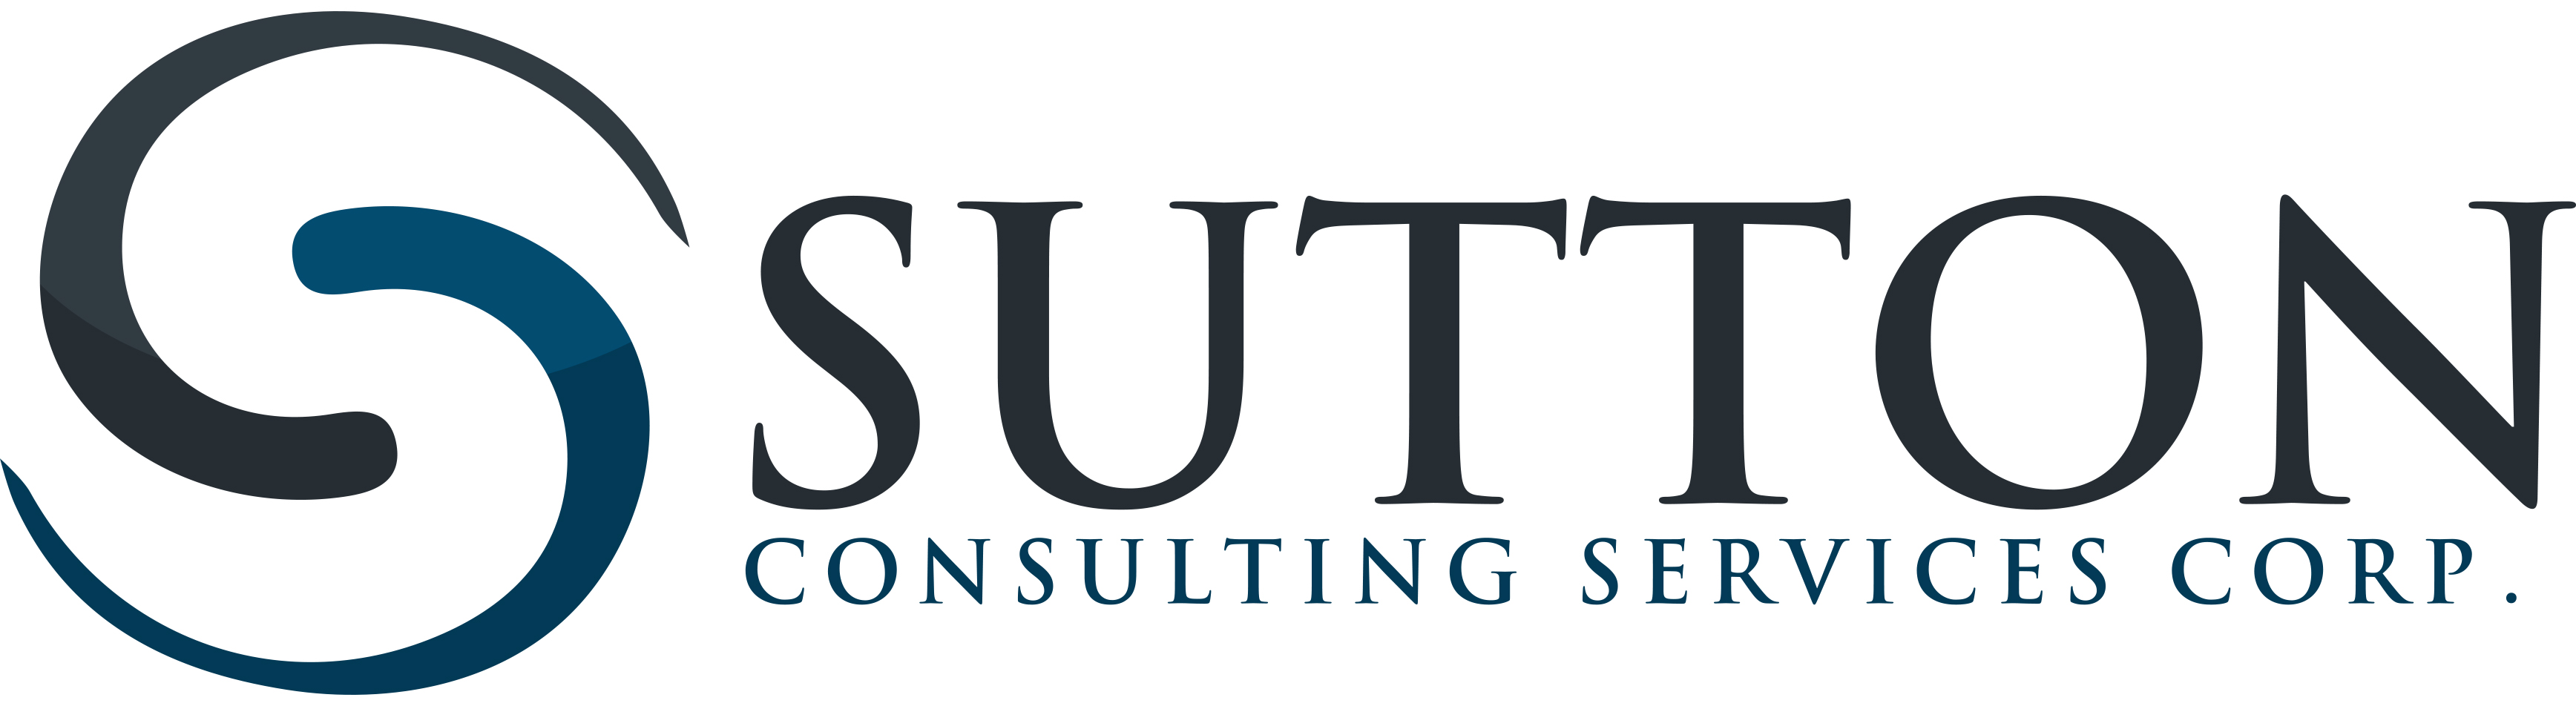 Sutton Consulting Services Corp.